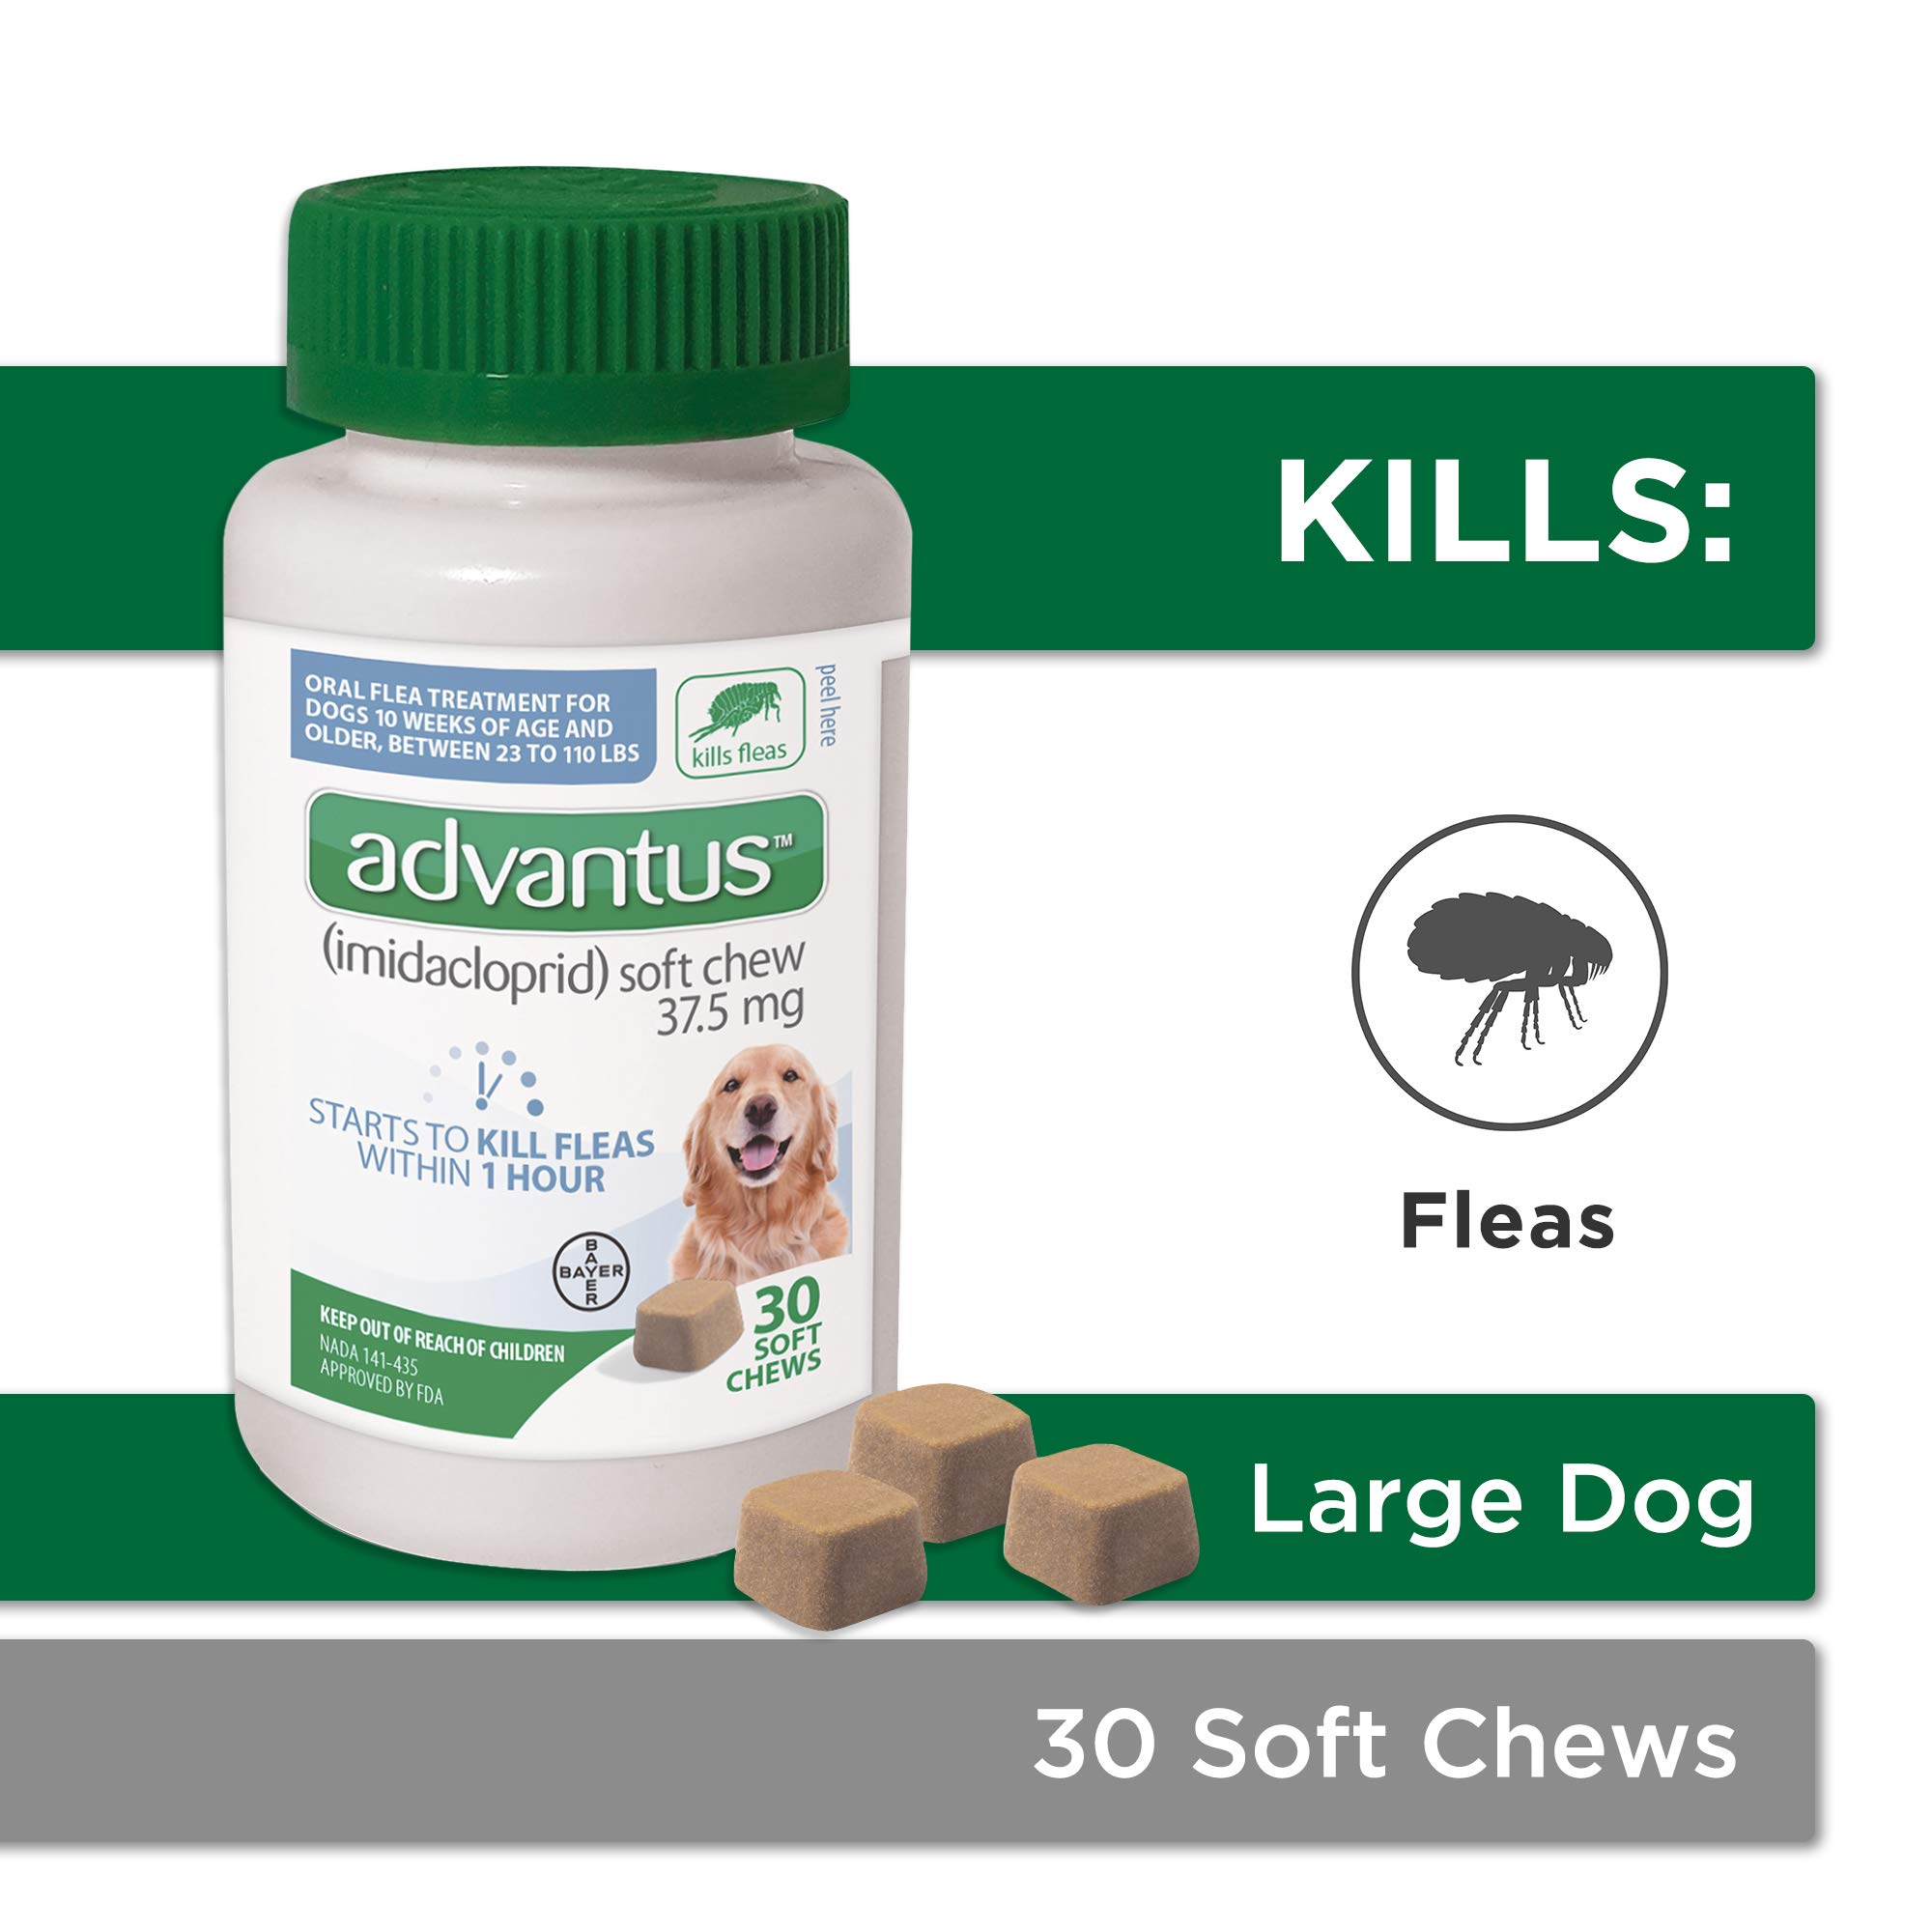 Bayer Animal Health Advantus, Large Dogs 23 - 110 lbs, Soft Chew Flea Treatment, Savory Meat Flavored, Same-As-Vet, 30 daily doses, White/Green - 85274422 by Bayer Animal Health